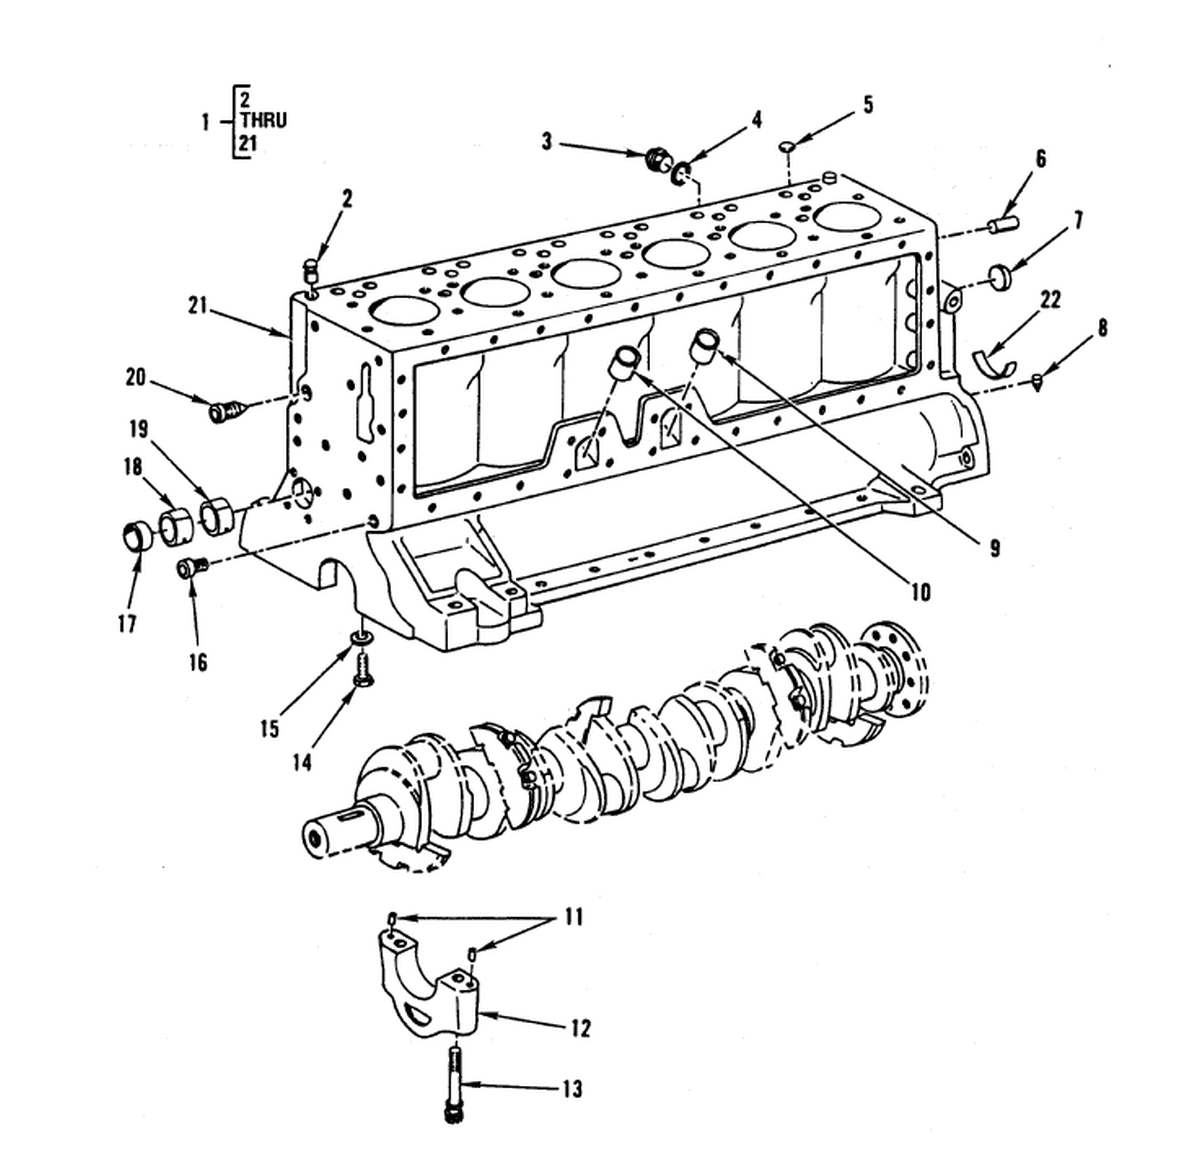 0003 00-2 Figure 2. Crankcase, Block, and Cylinder Head – Diesel ...